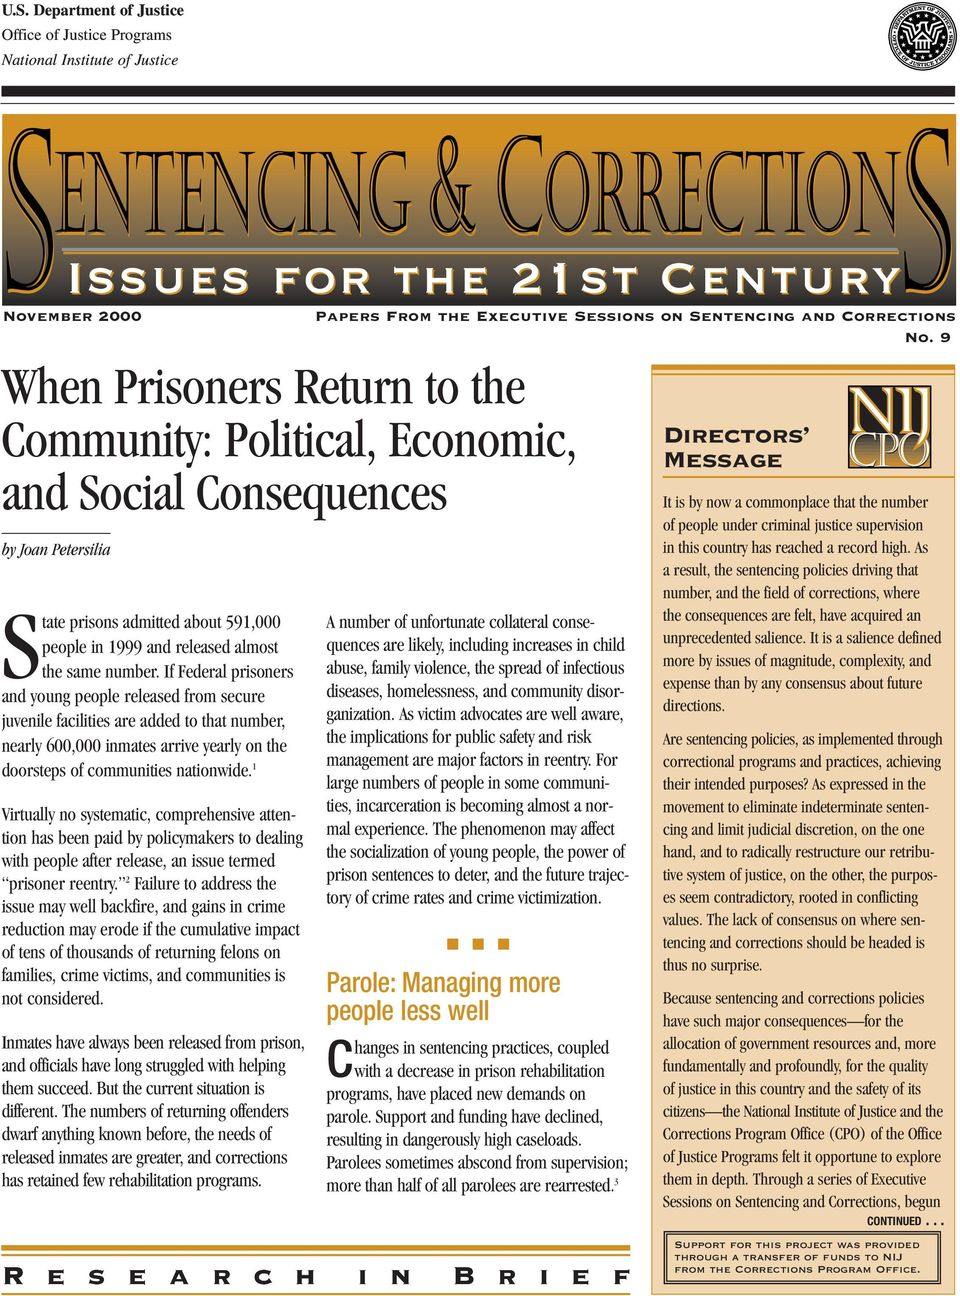 If Federal prisoners and young people released from secure juvenile facilities are added to that number, nearly 600,000 inmates arrive yearly on the doorsteps of communities nationwide.